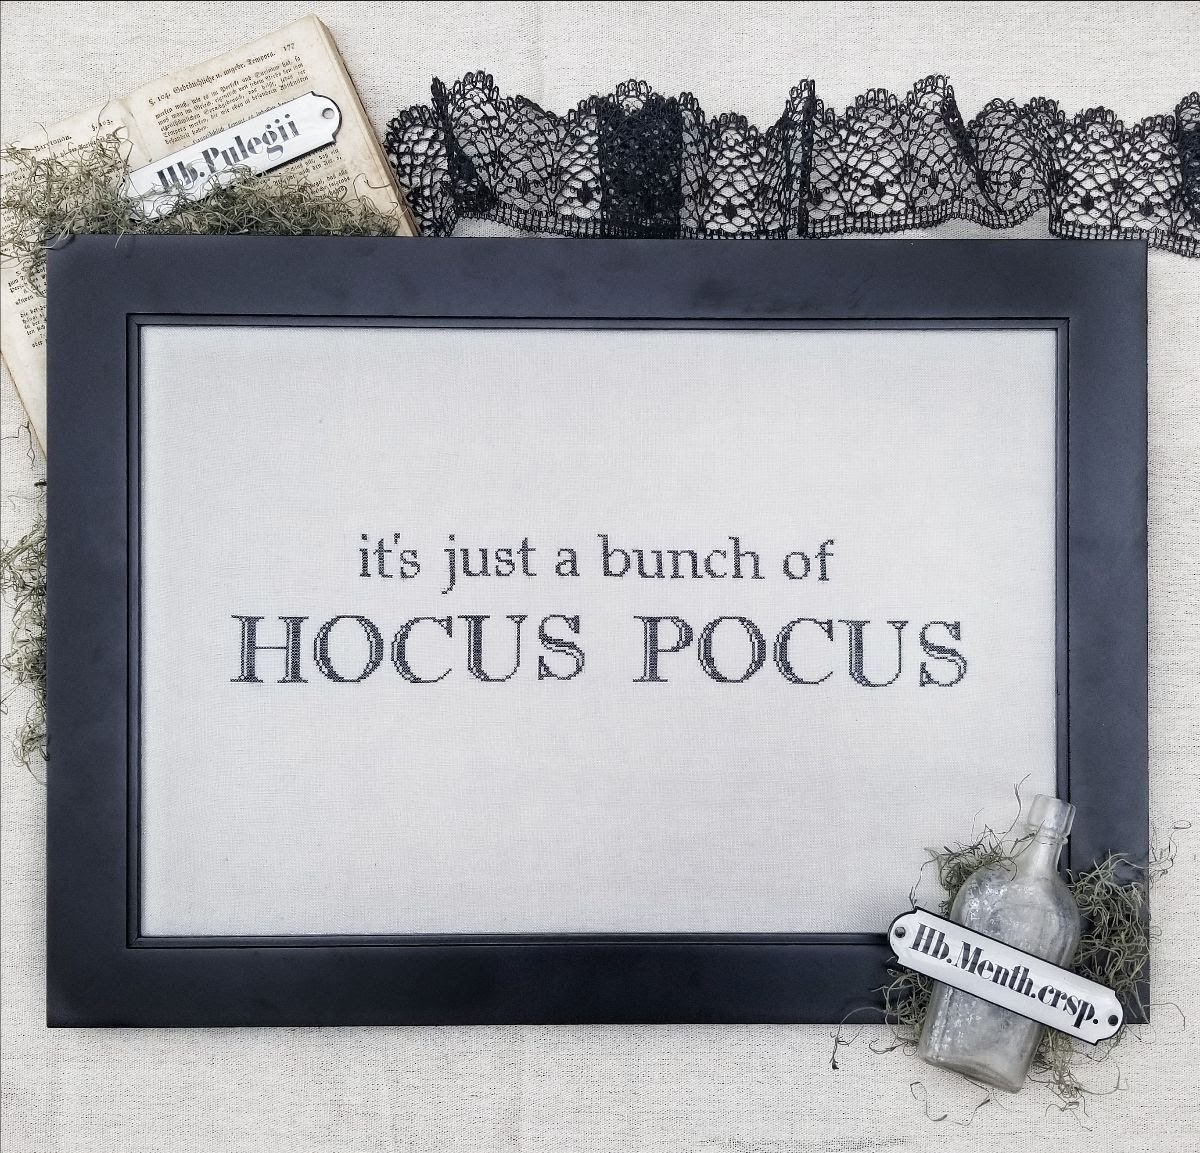 Hocus Pocus ~ Hello from Liz